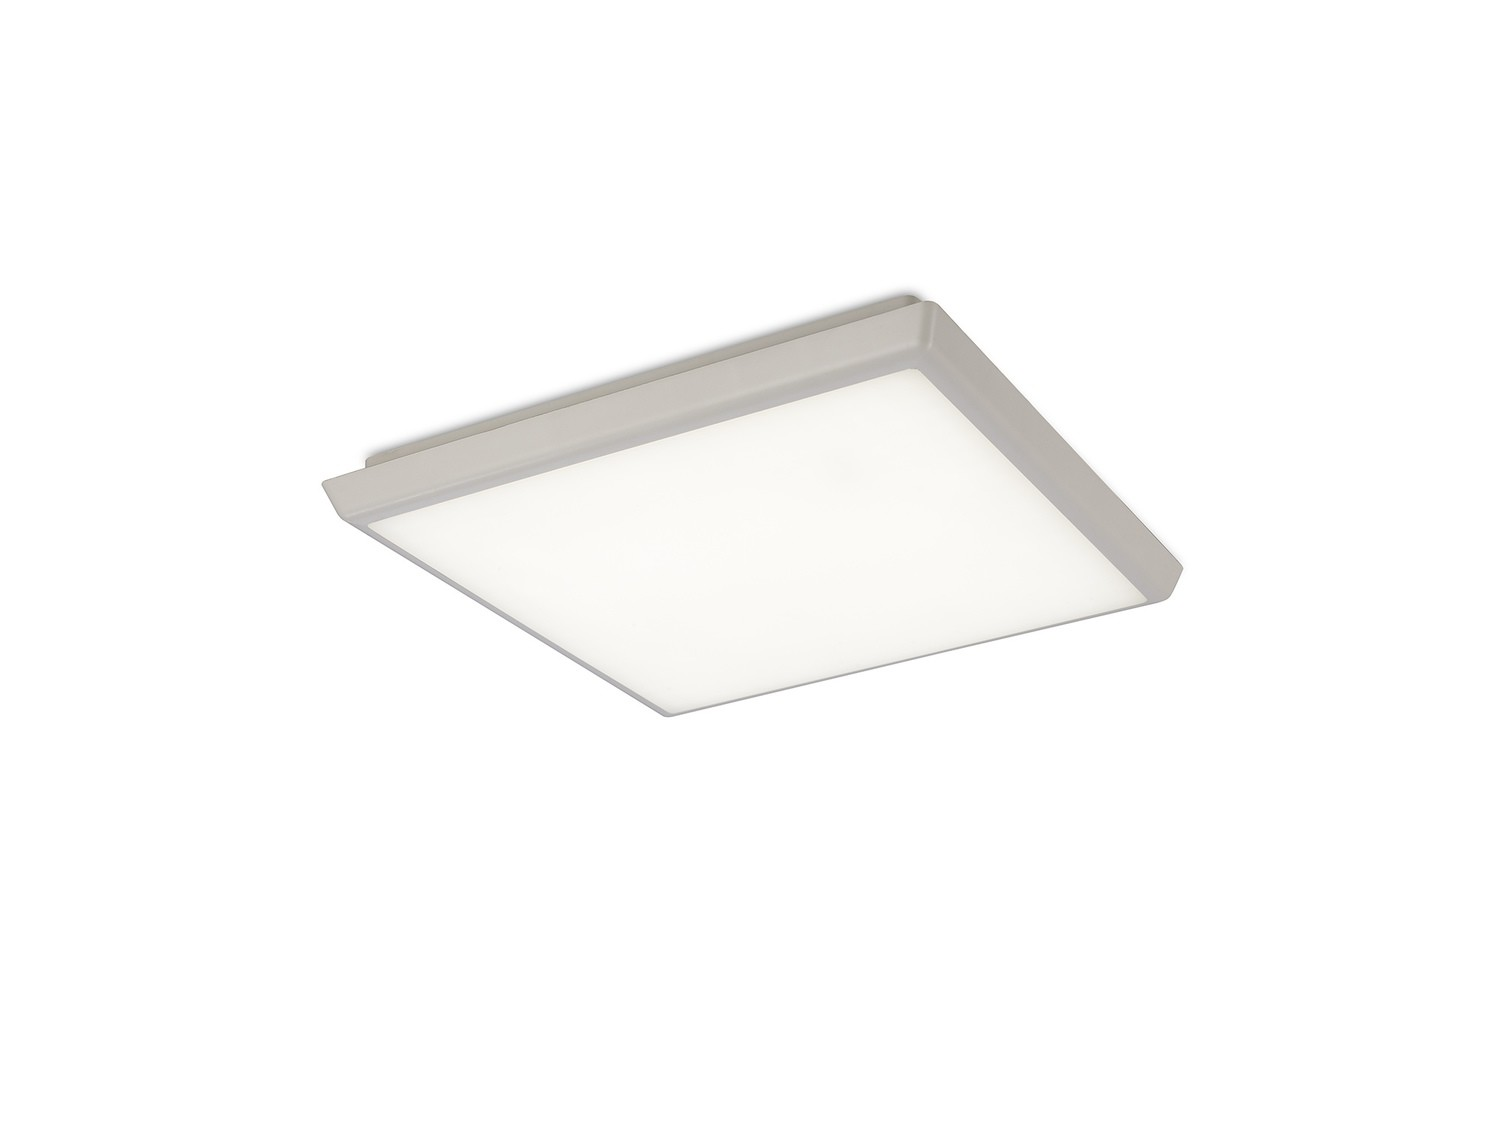 Aneto Ceiling, 30cm Square, 18W LED 4000K, 1700lm, IP65, White, 3yrs Warranty